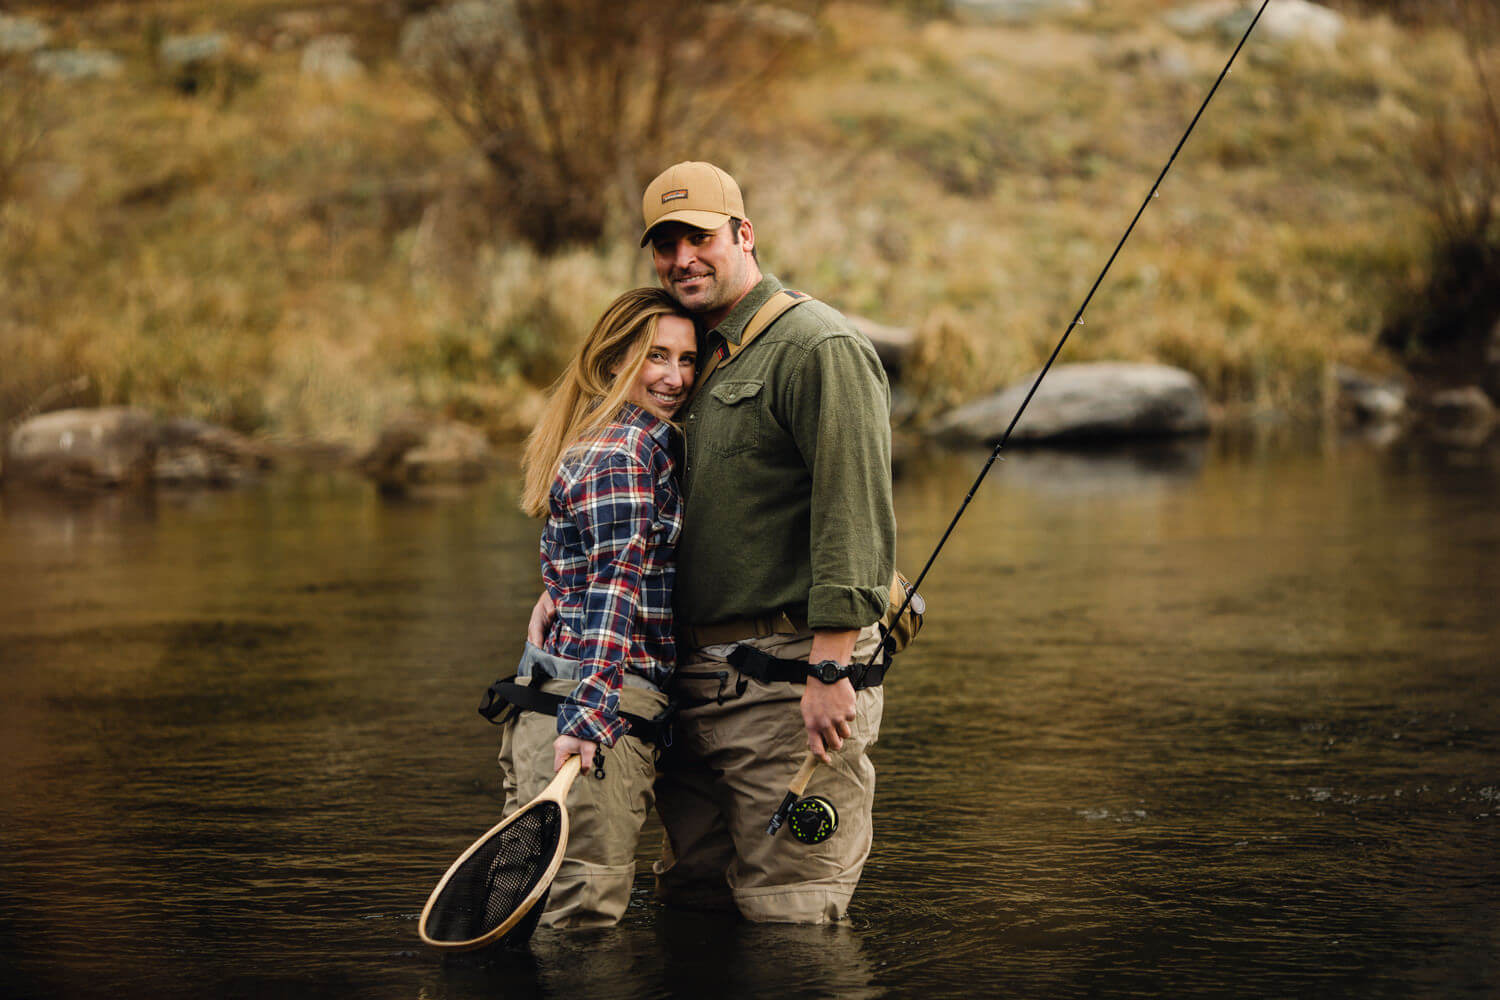 Couple in river fishing. Woman leans in for a hug.